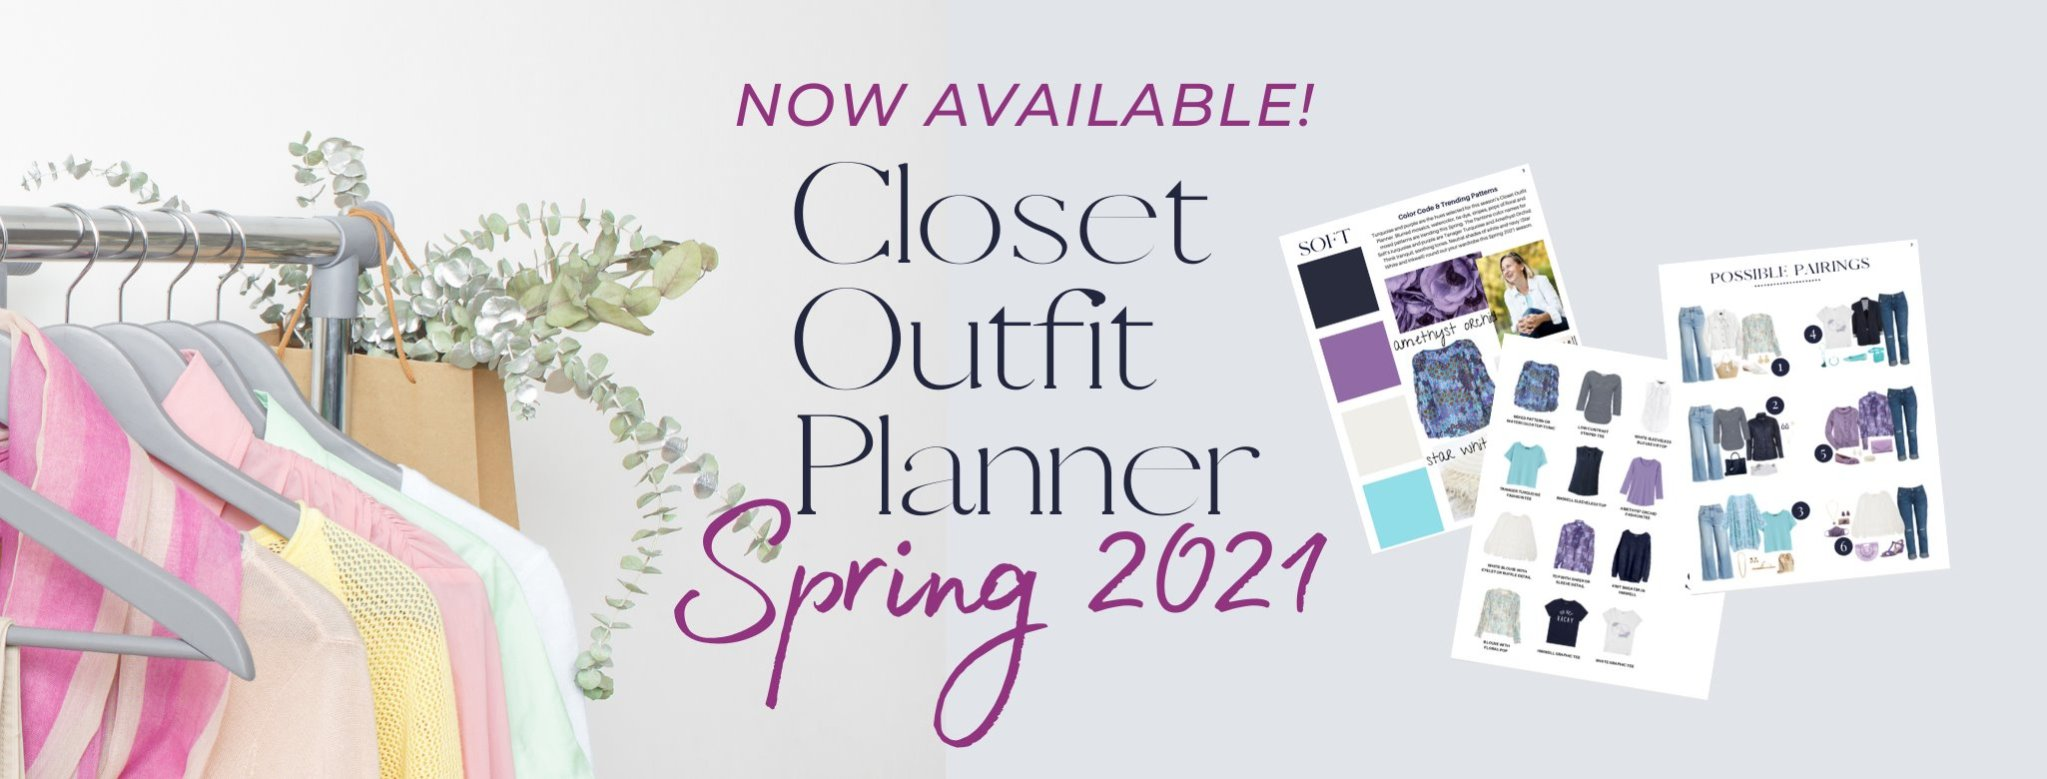 Gray background with pastel closet and gray hangers. Small pictures of capsule wardrobe planner with words Now available! Closet Outfit Planner 2021